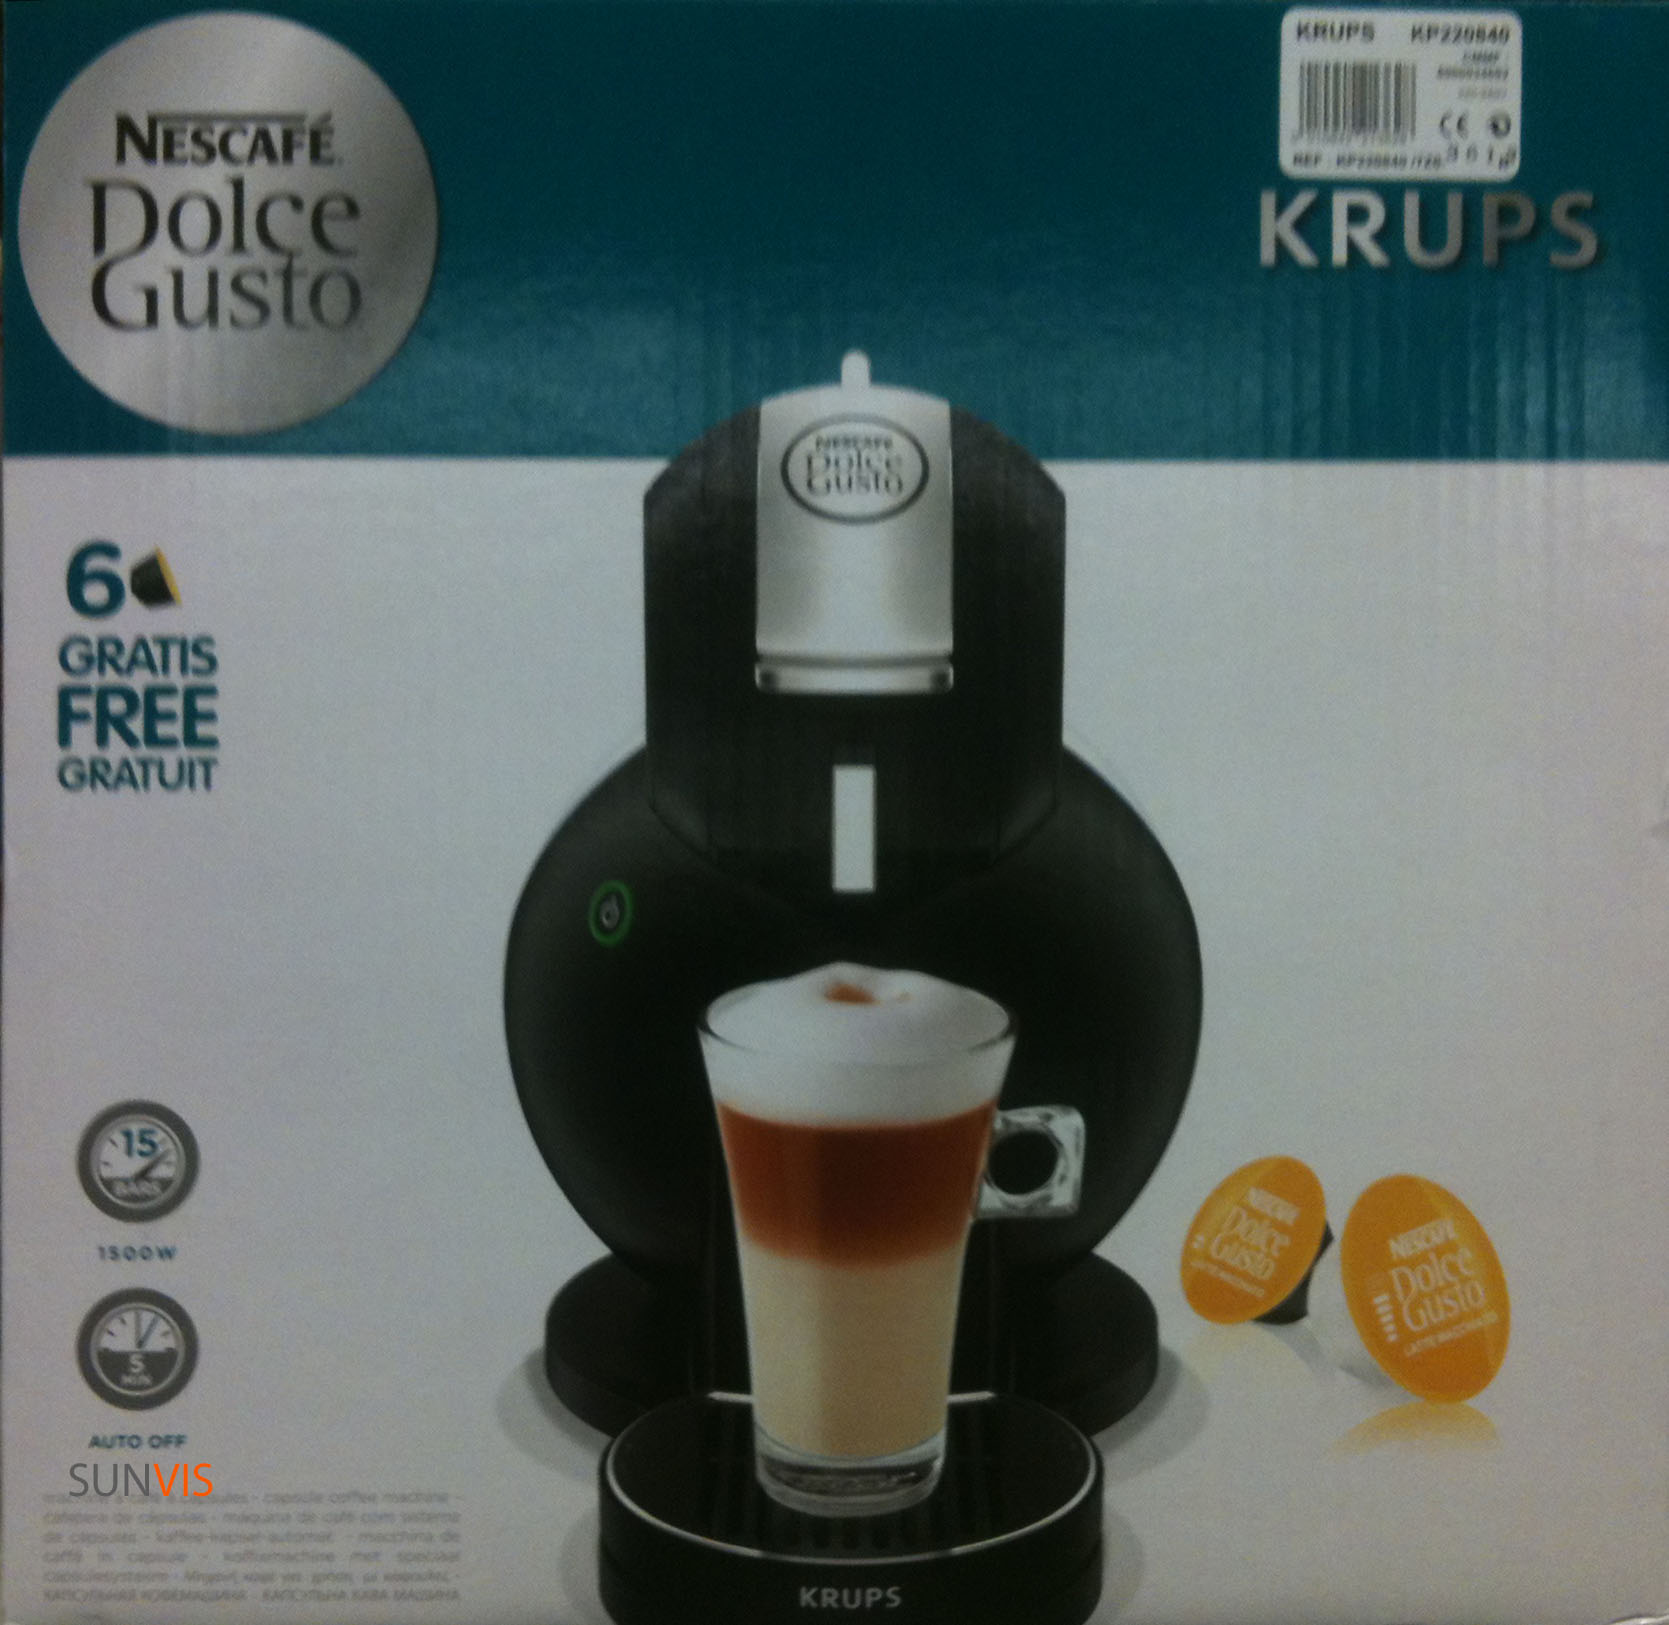 Electronic Nescafe Dolce Gusto Coffee Machines nescafe dolce gusto coffee machine ukiah ford 2017 krups kp220840 machine